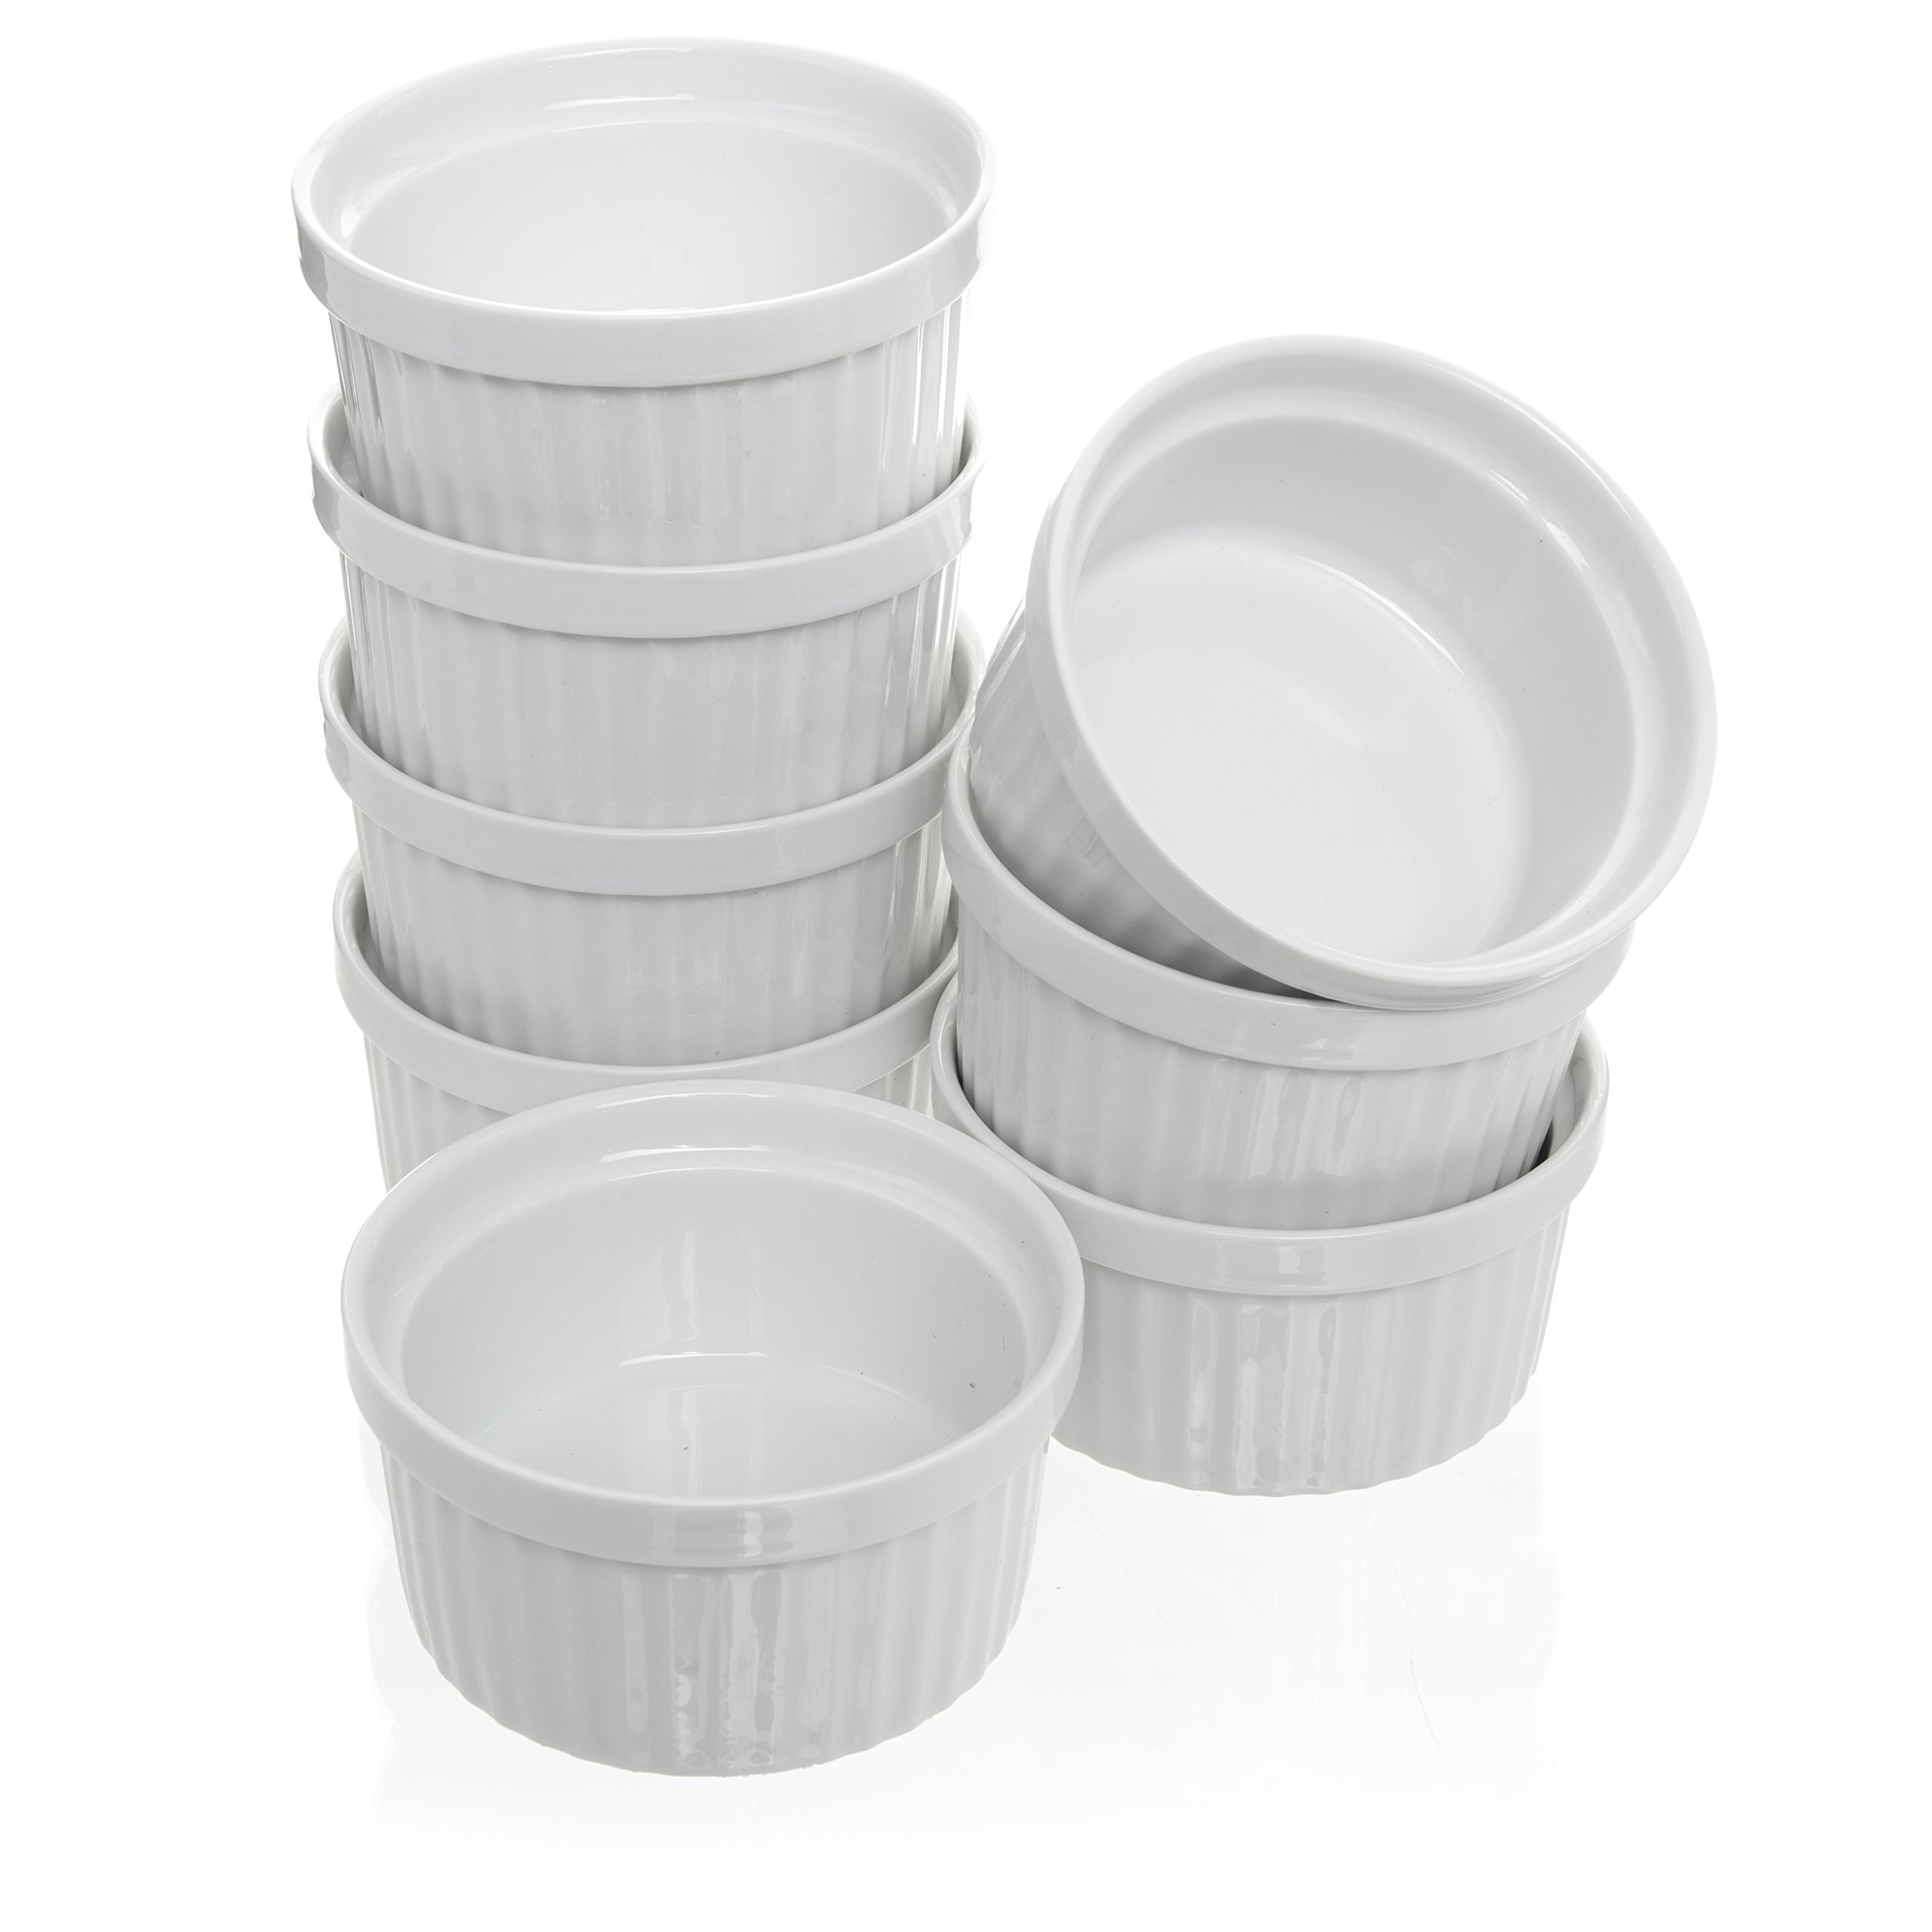 Set of 8,4 oz Porcelain Ramekins Bakeware Set, White Porcelain Baking Cups for Pudding, Creme Brulee, Custard Cups and Souffle Dishes, Durable 4 ounce Ramekins for Baking, Cooking, Serving and More by California Home Goods